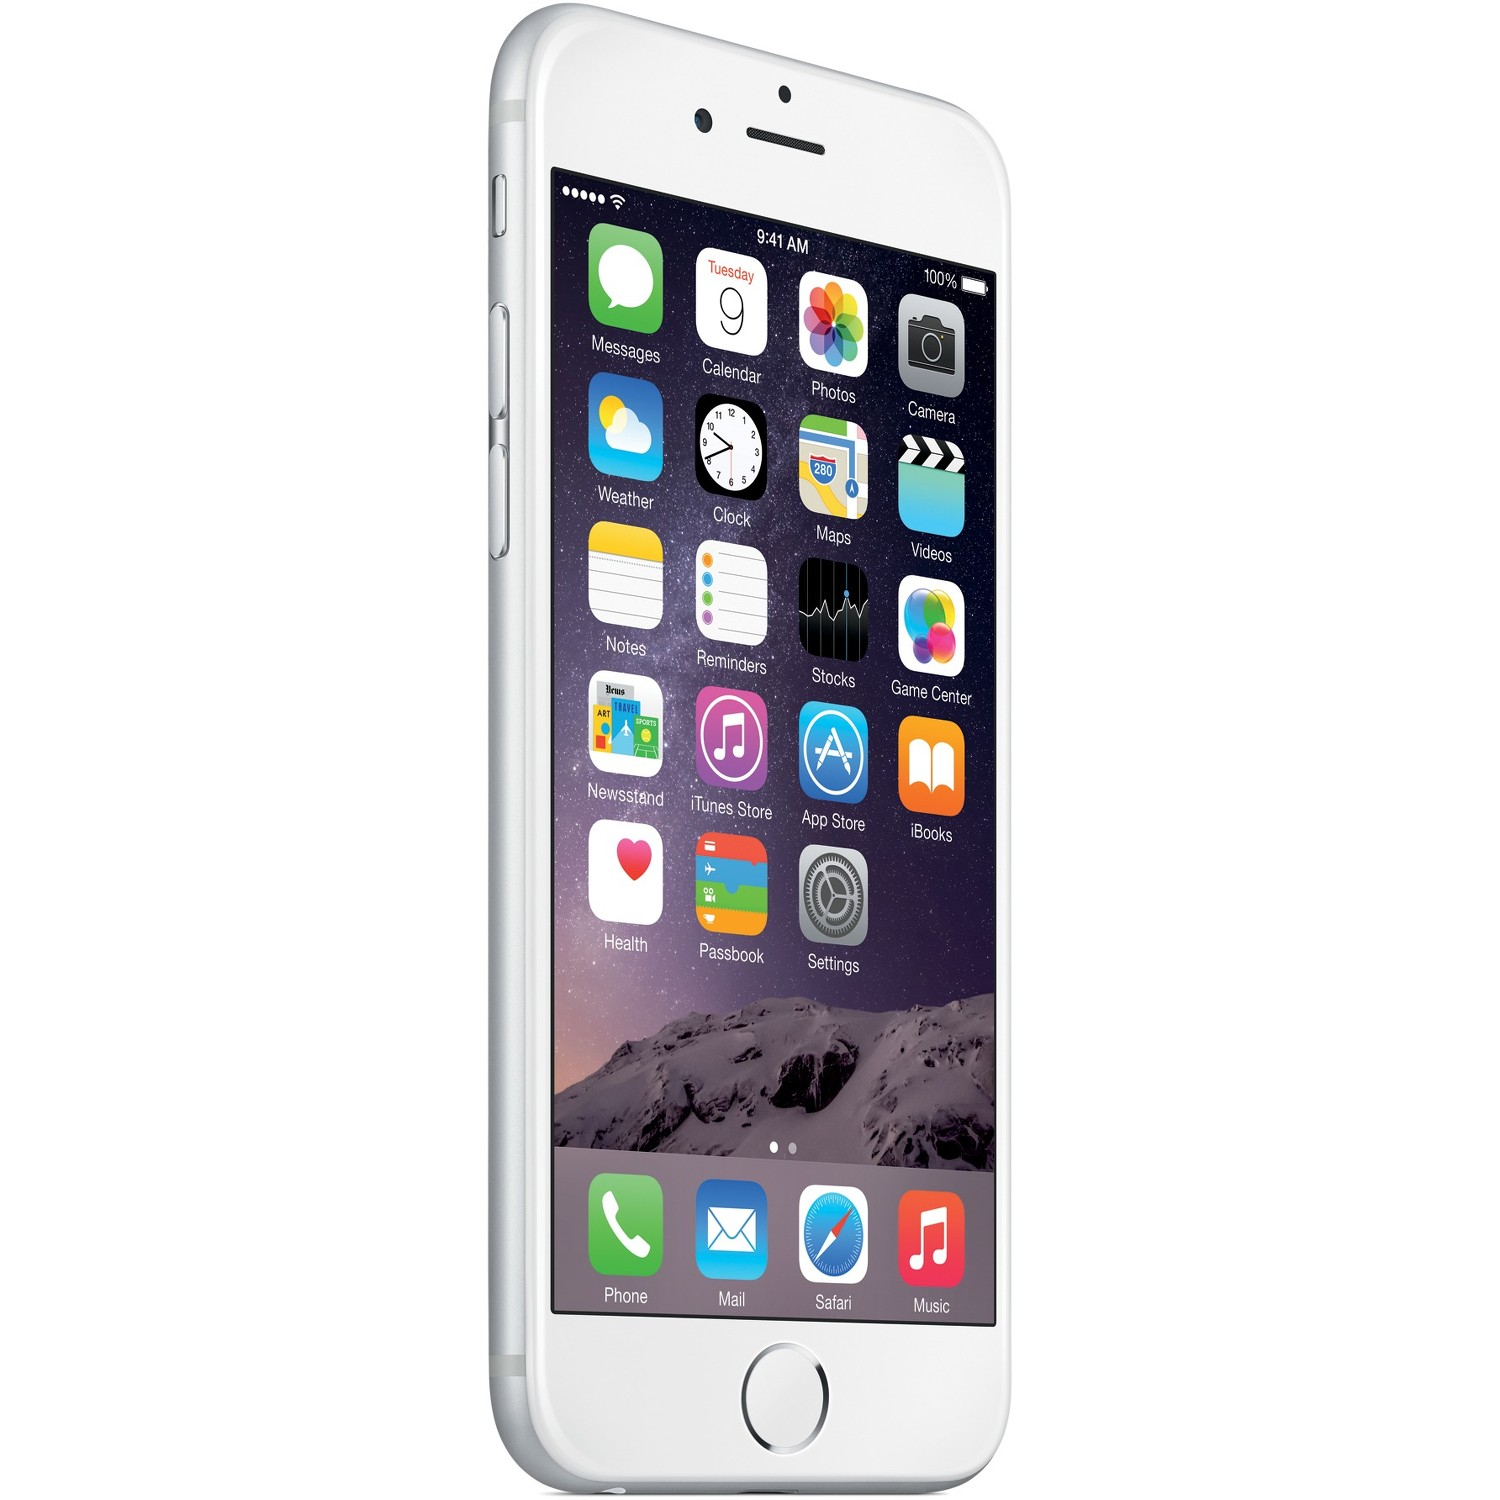 Apple iPhone 6+ (16GB) Silver - US Cellular